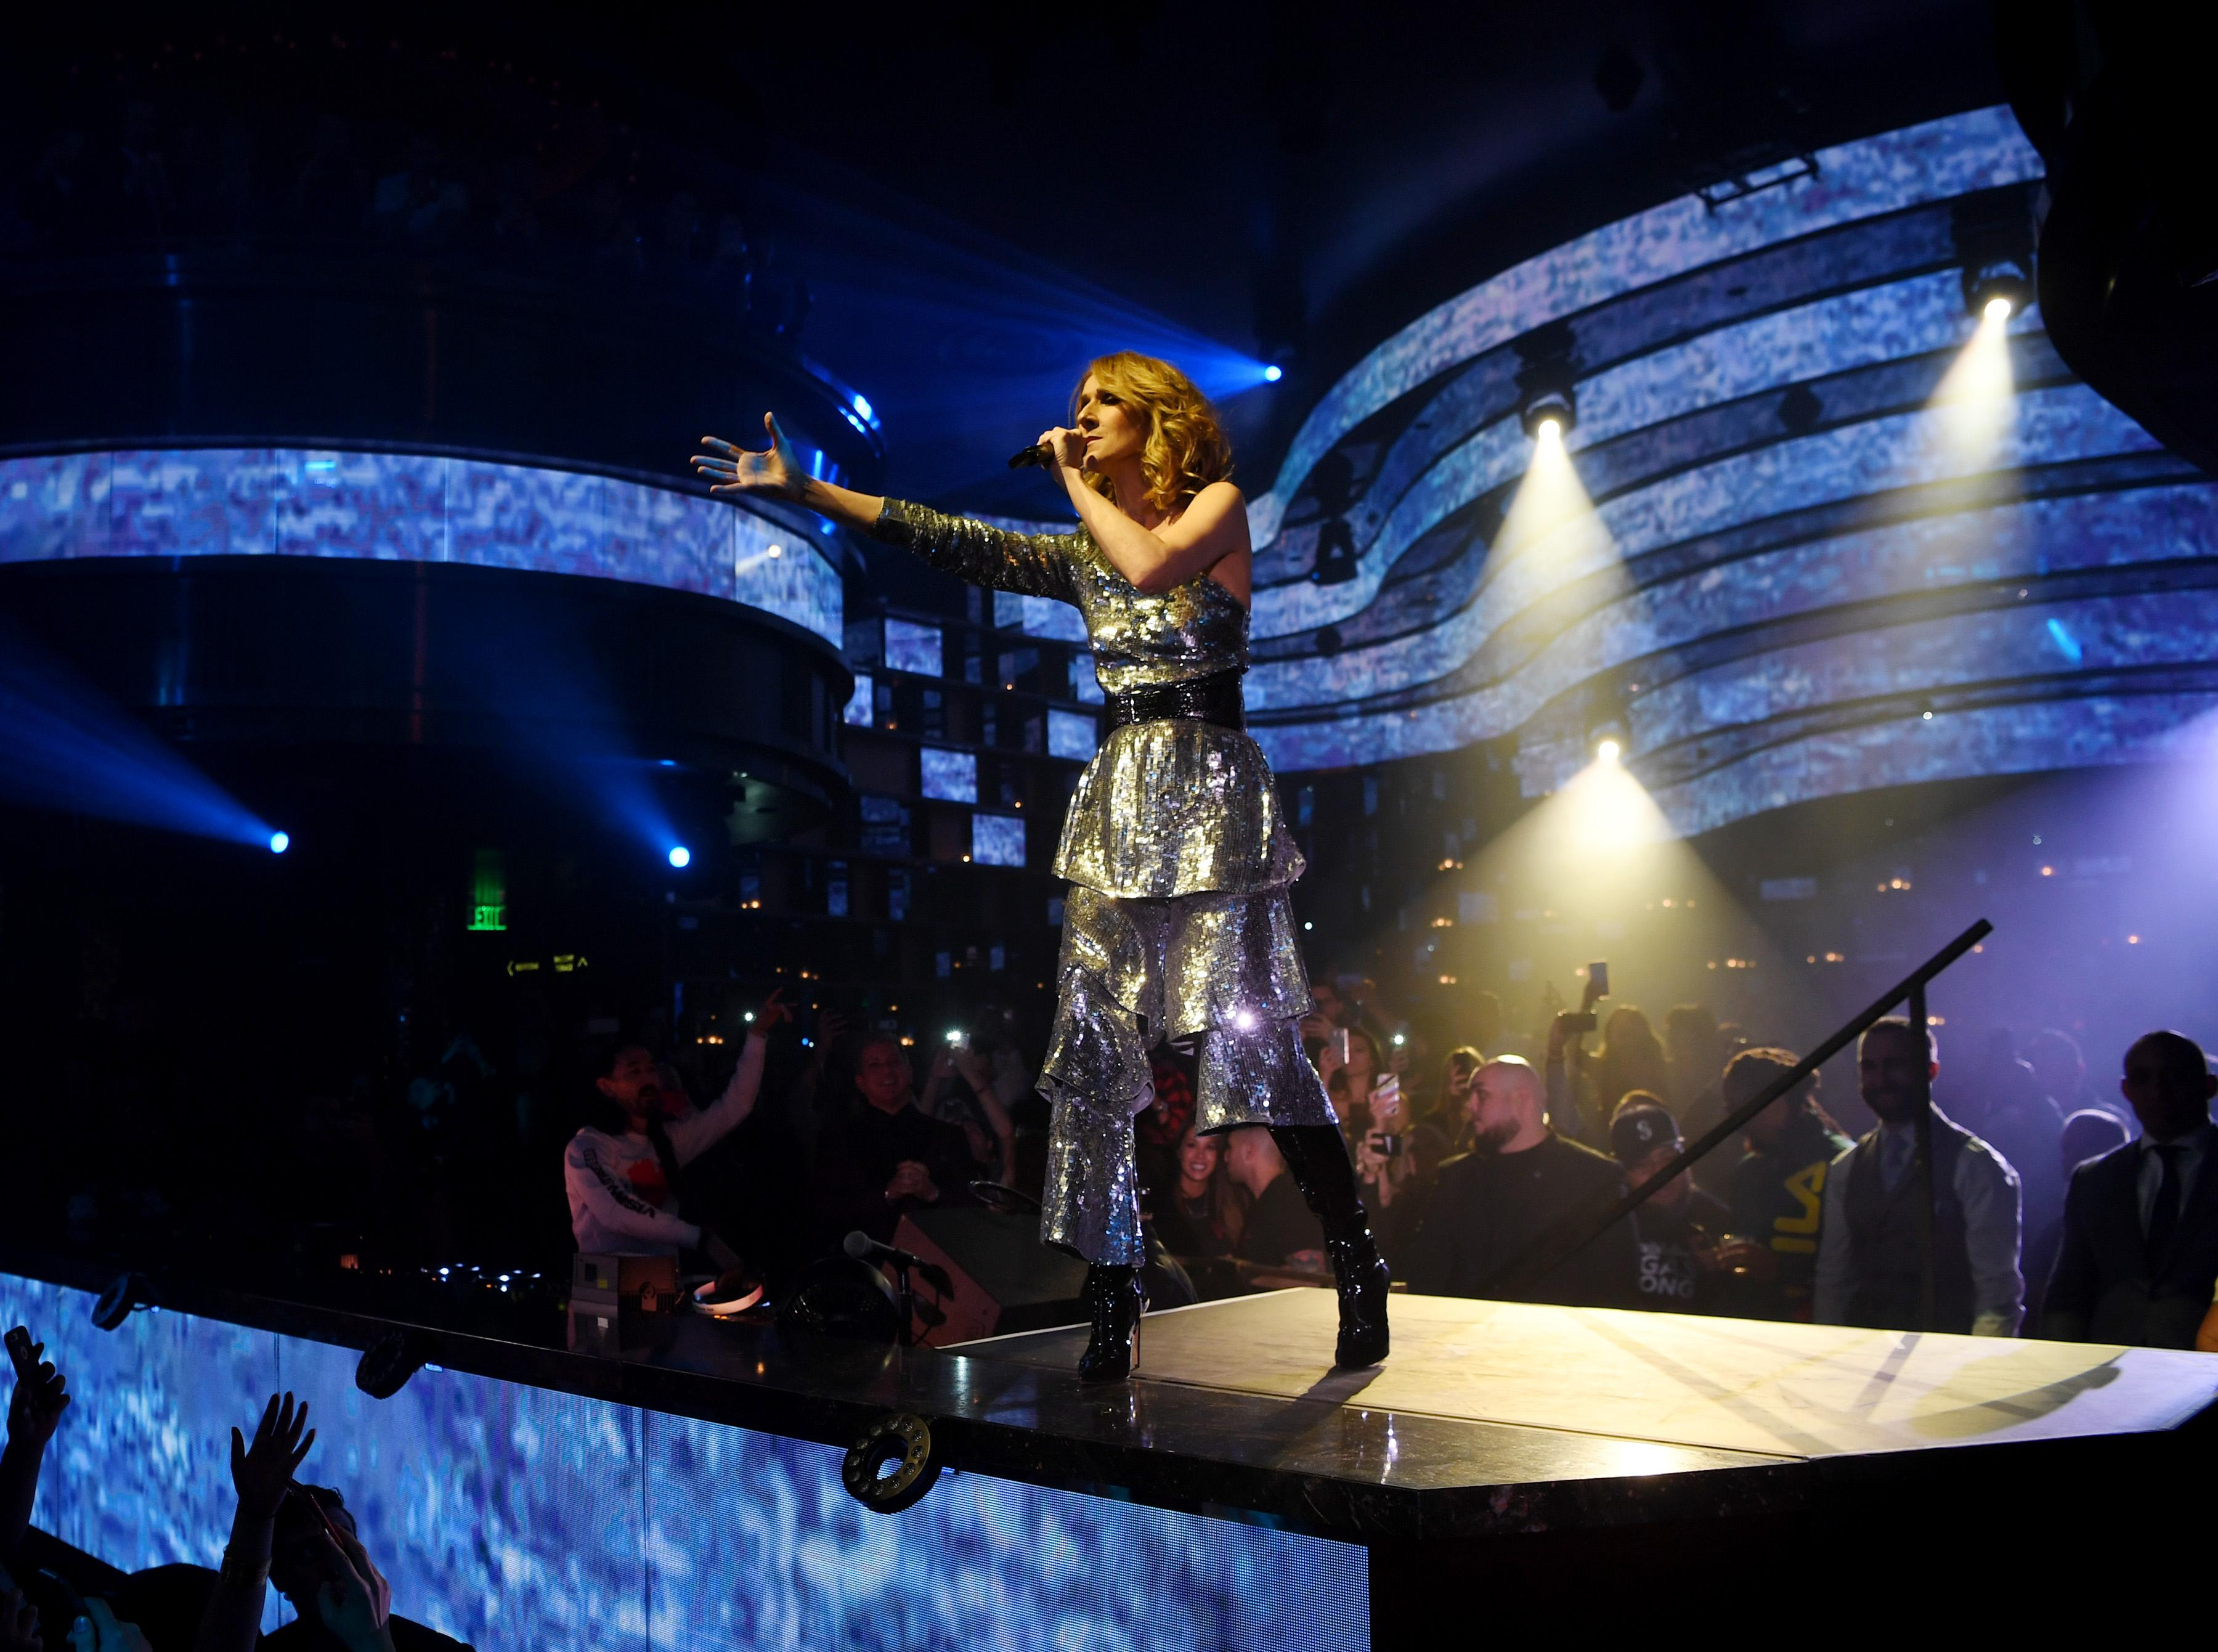 Celine Dion performs during Hakkasan Group's benefit concert Tuesday, Nov. 7, 2017, at OMNIA Nightclub inside Caesars Palace. (Photo By Denise Truscello)